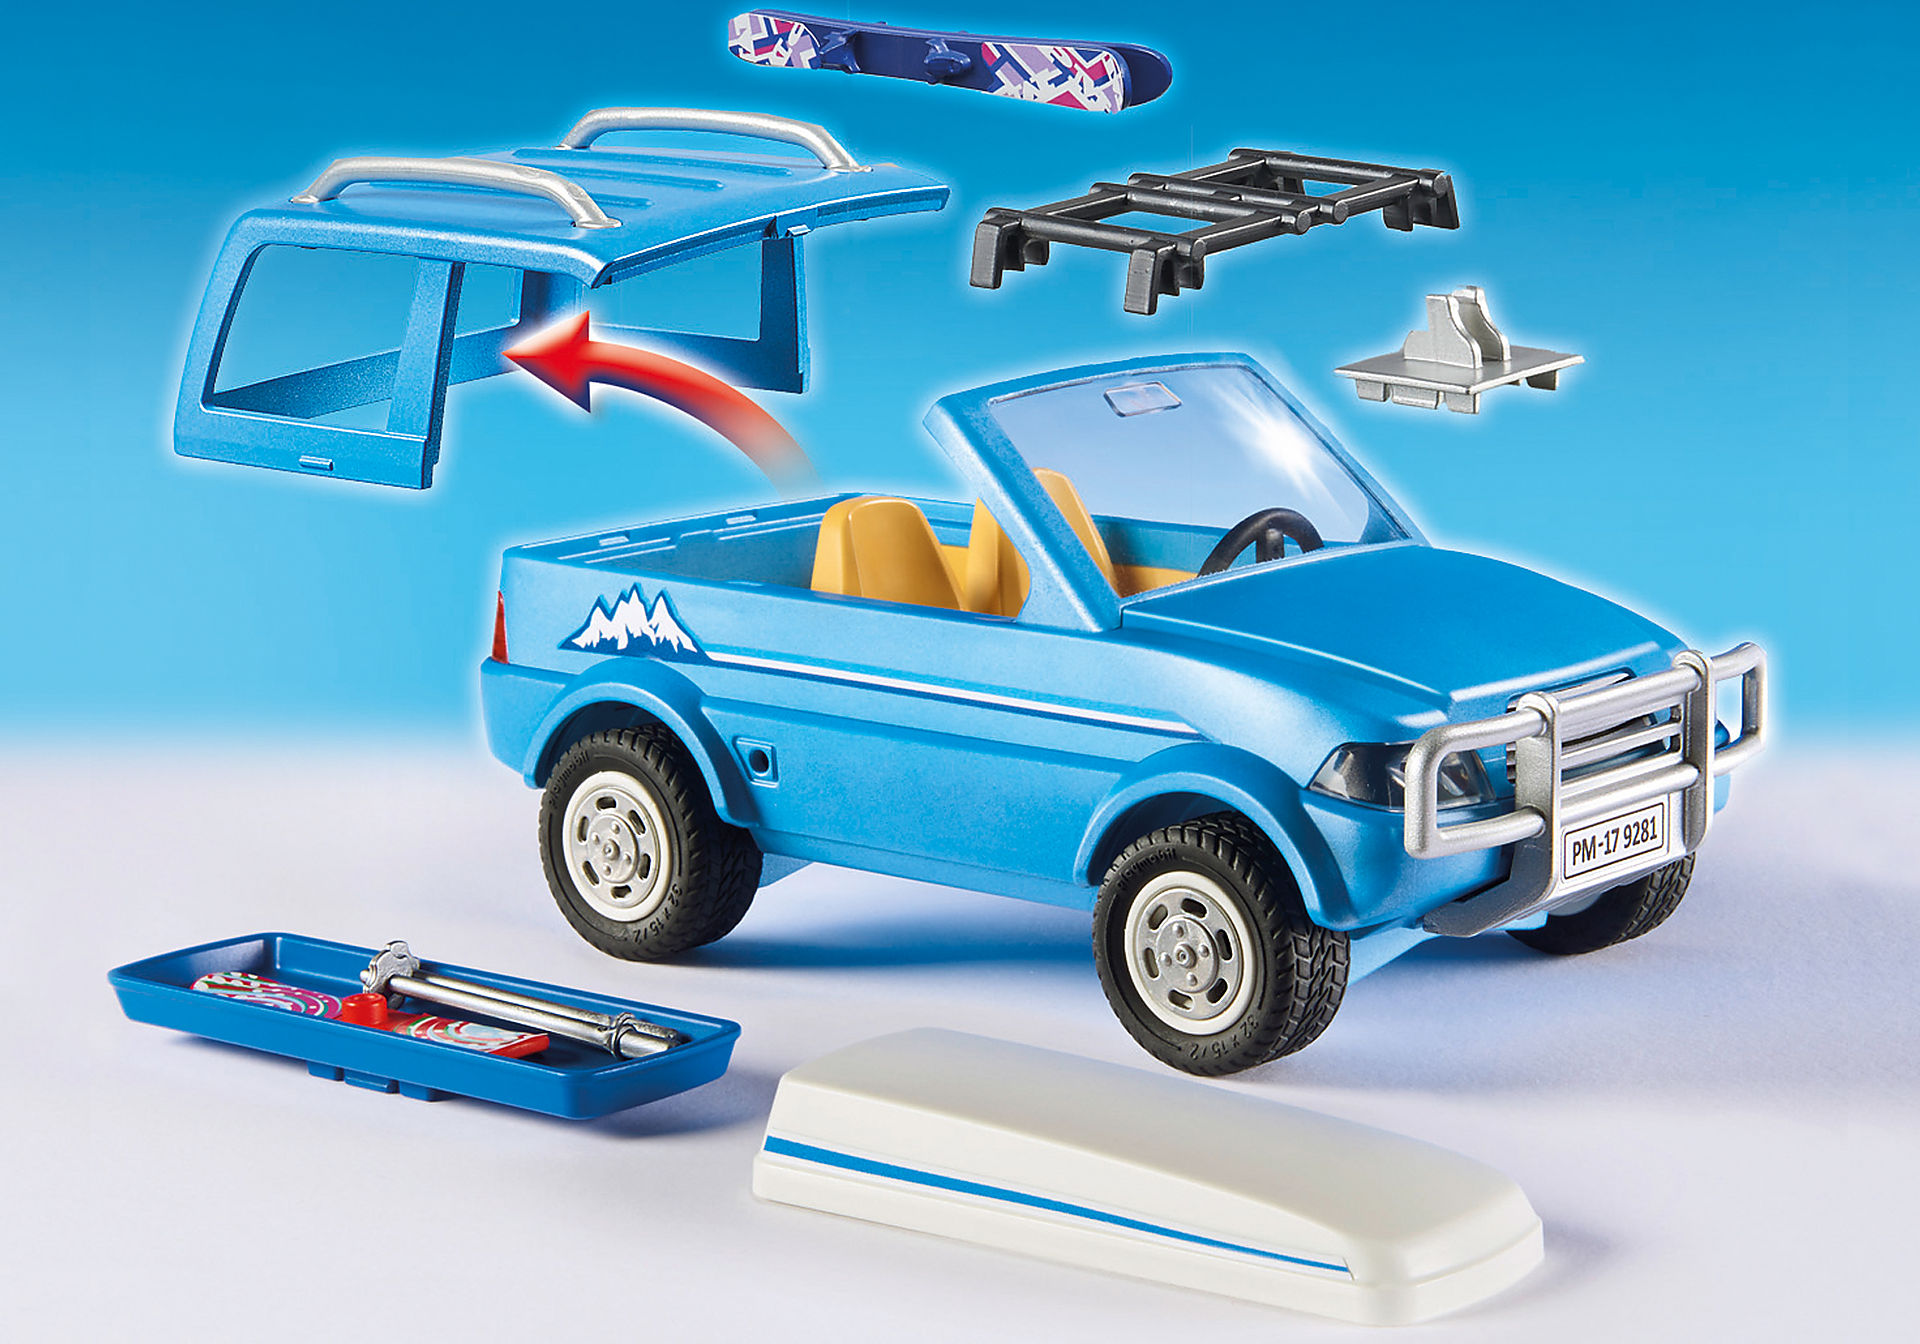 http://media.playmobil.com/i/playmobil/9281_product_extra3/Όχημα 4x4 με μπαγκαζιέρα